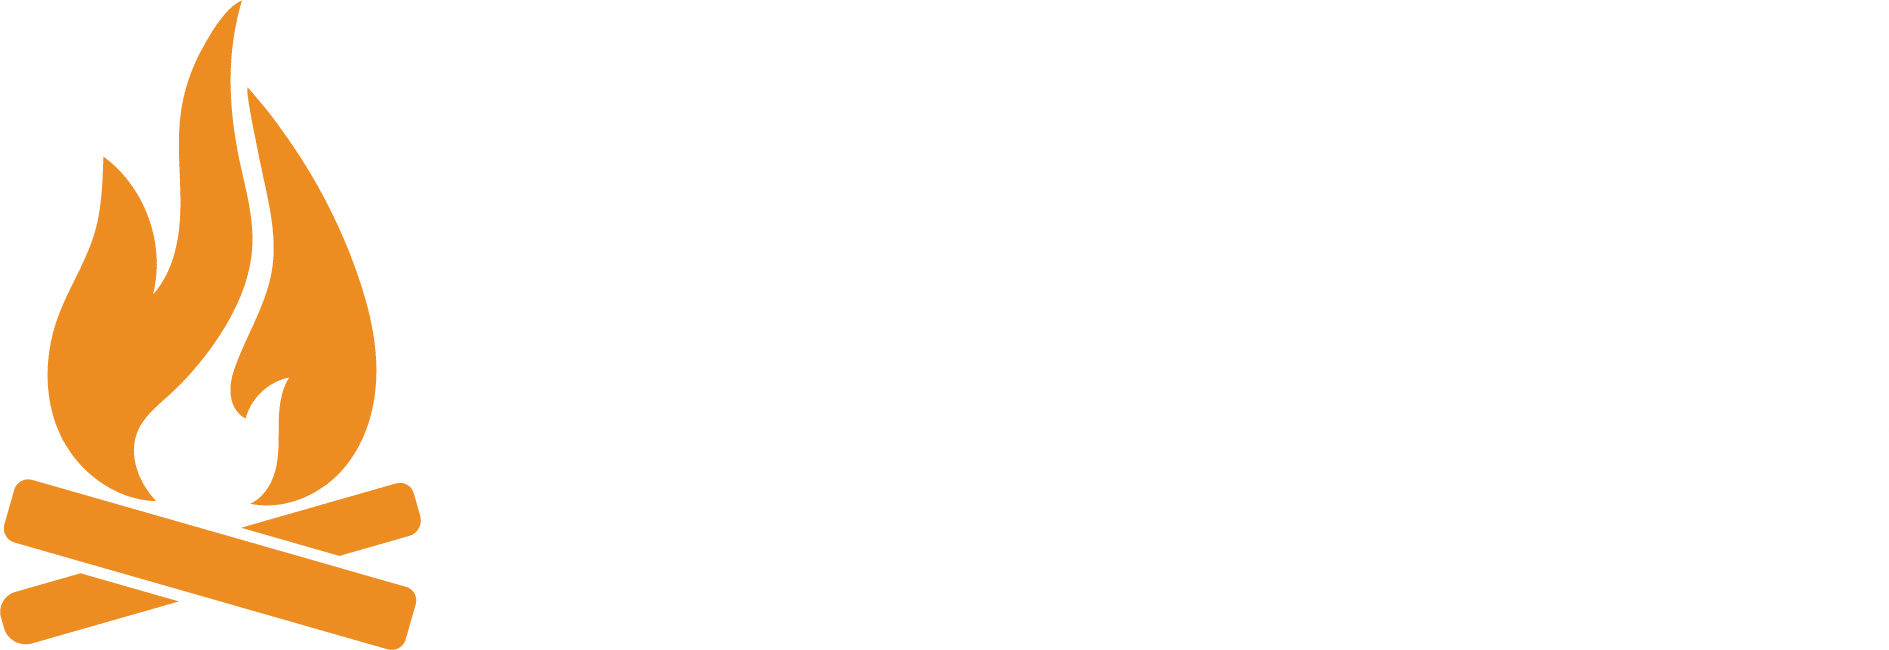 Bonfire-horizontal-white text